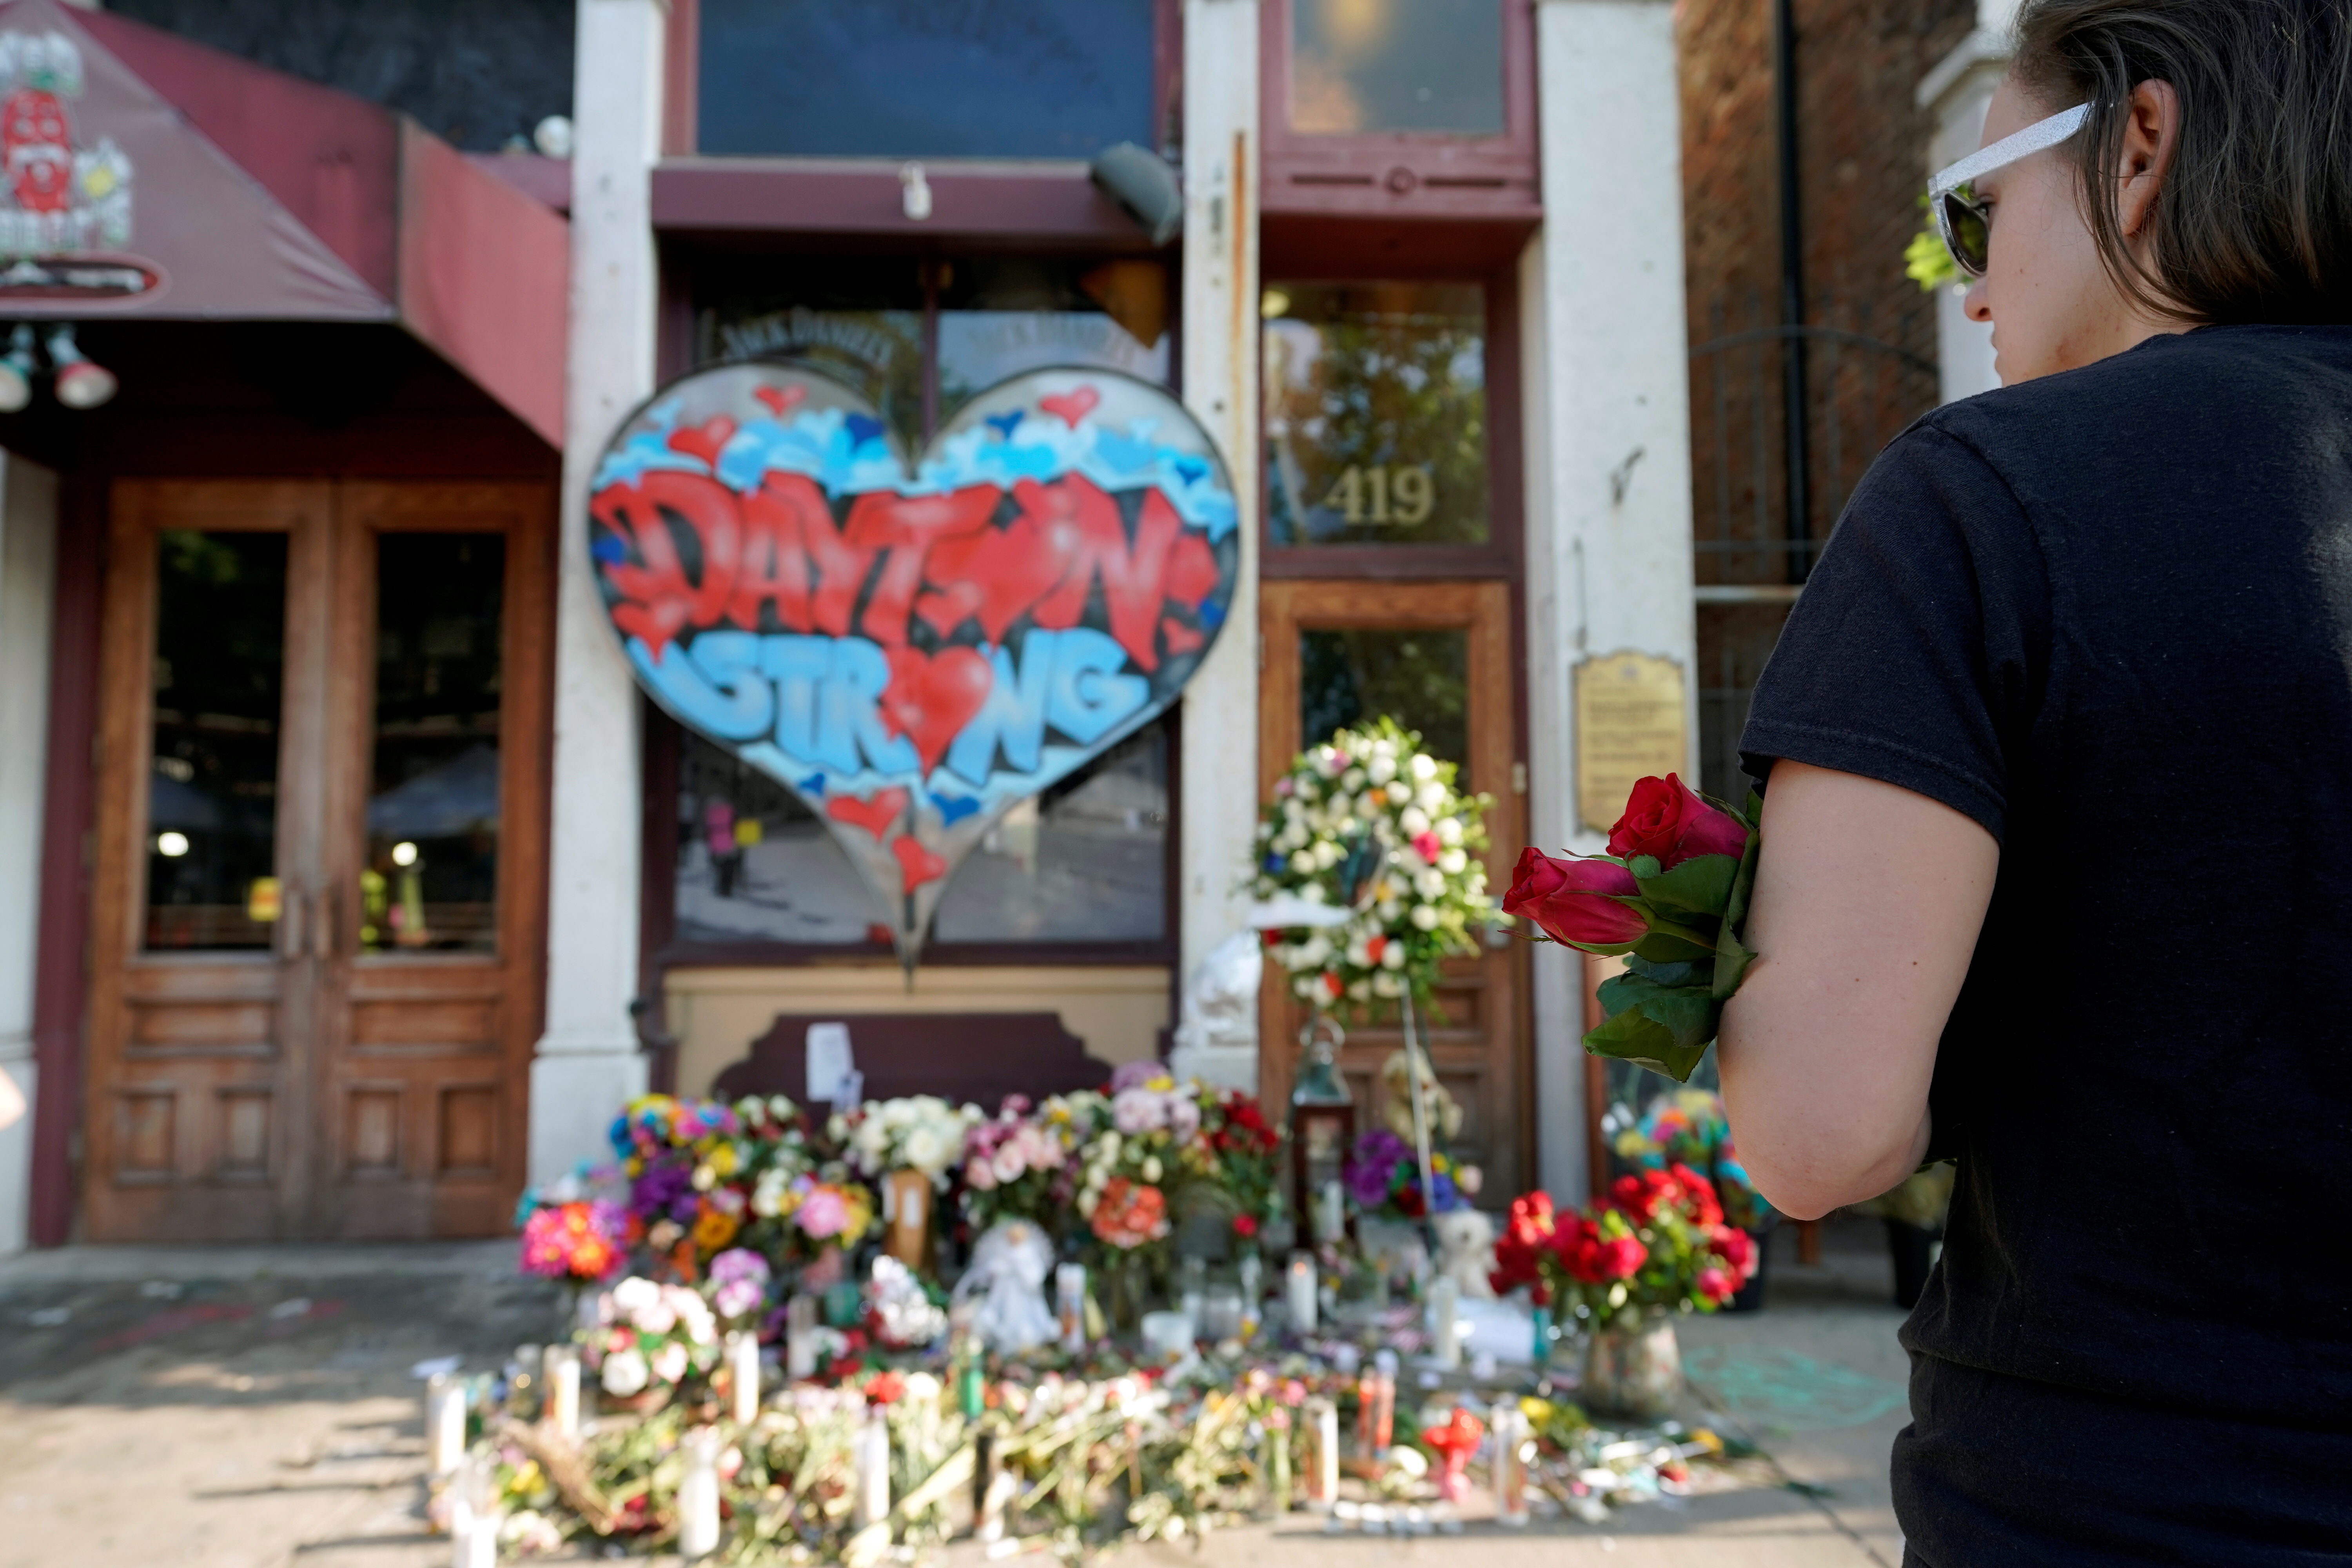 A Oregon District resident stands at a memorial for those killed during Sunday morning's a mass shooting in Dayton, Ohio, U.S. August 7, 2019. REUTERS/Bryan Woolston